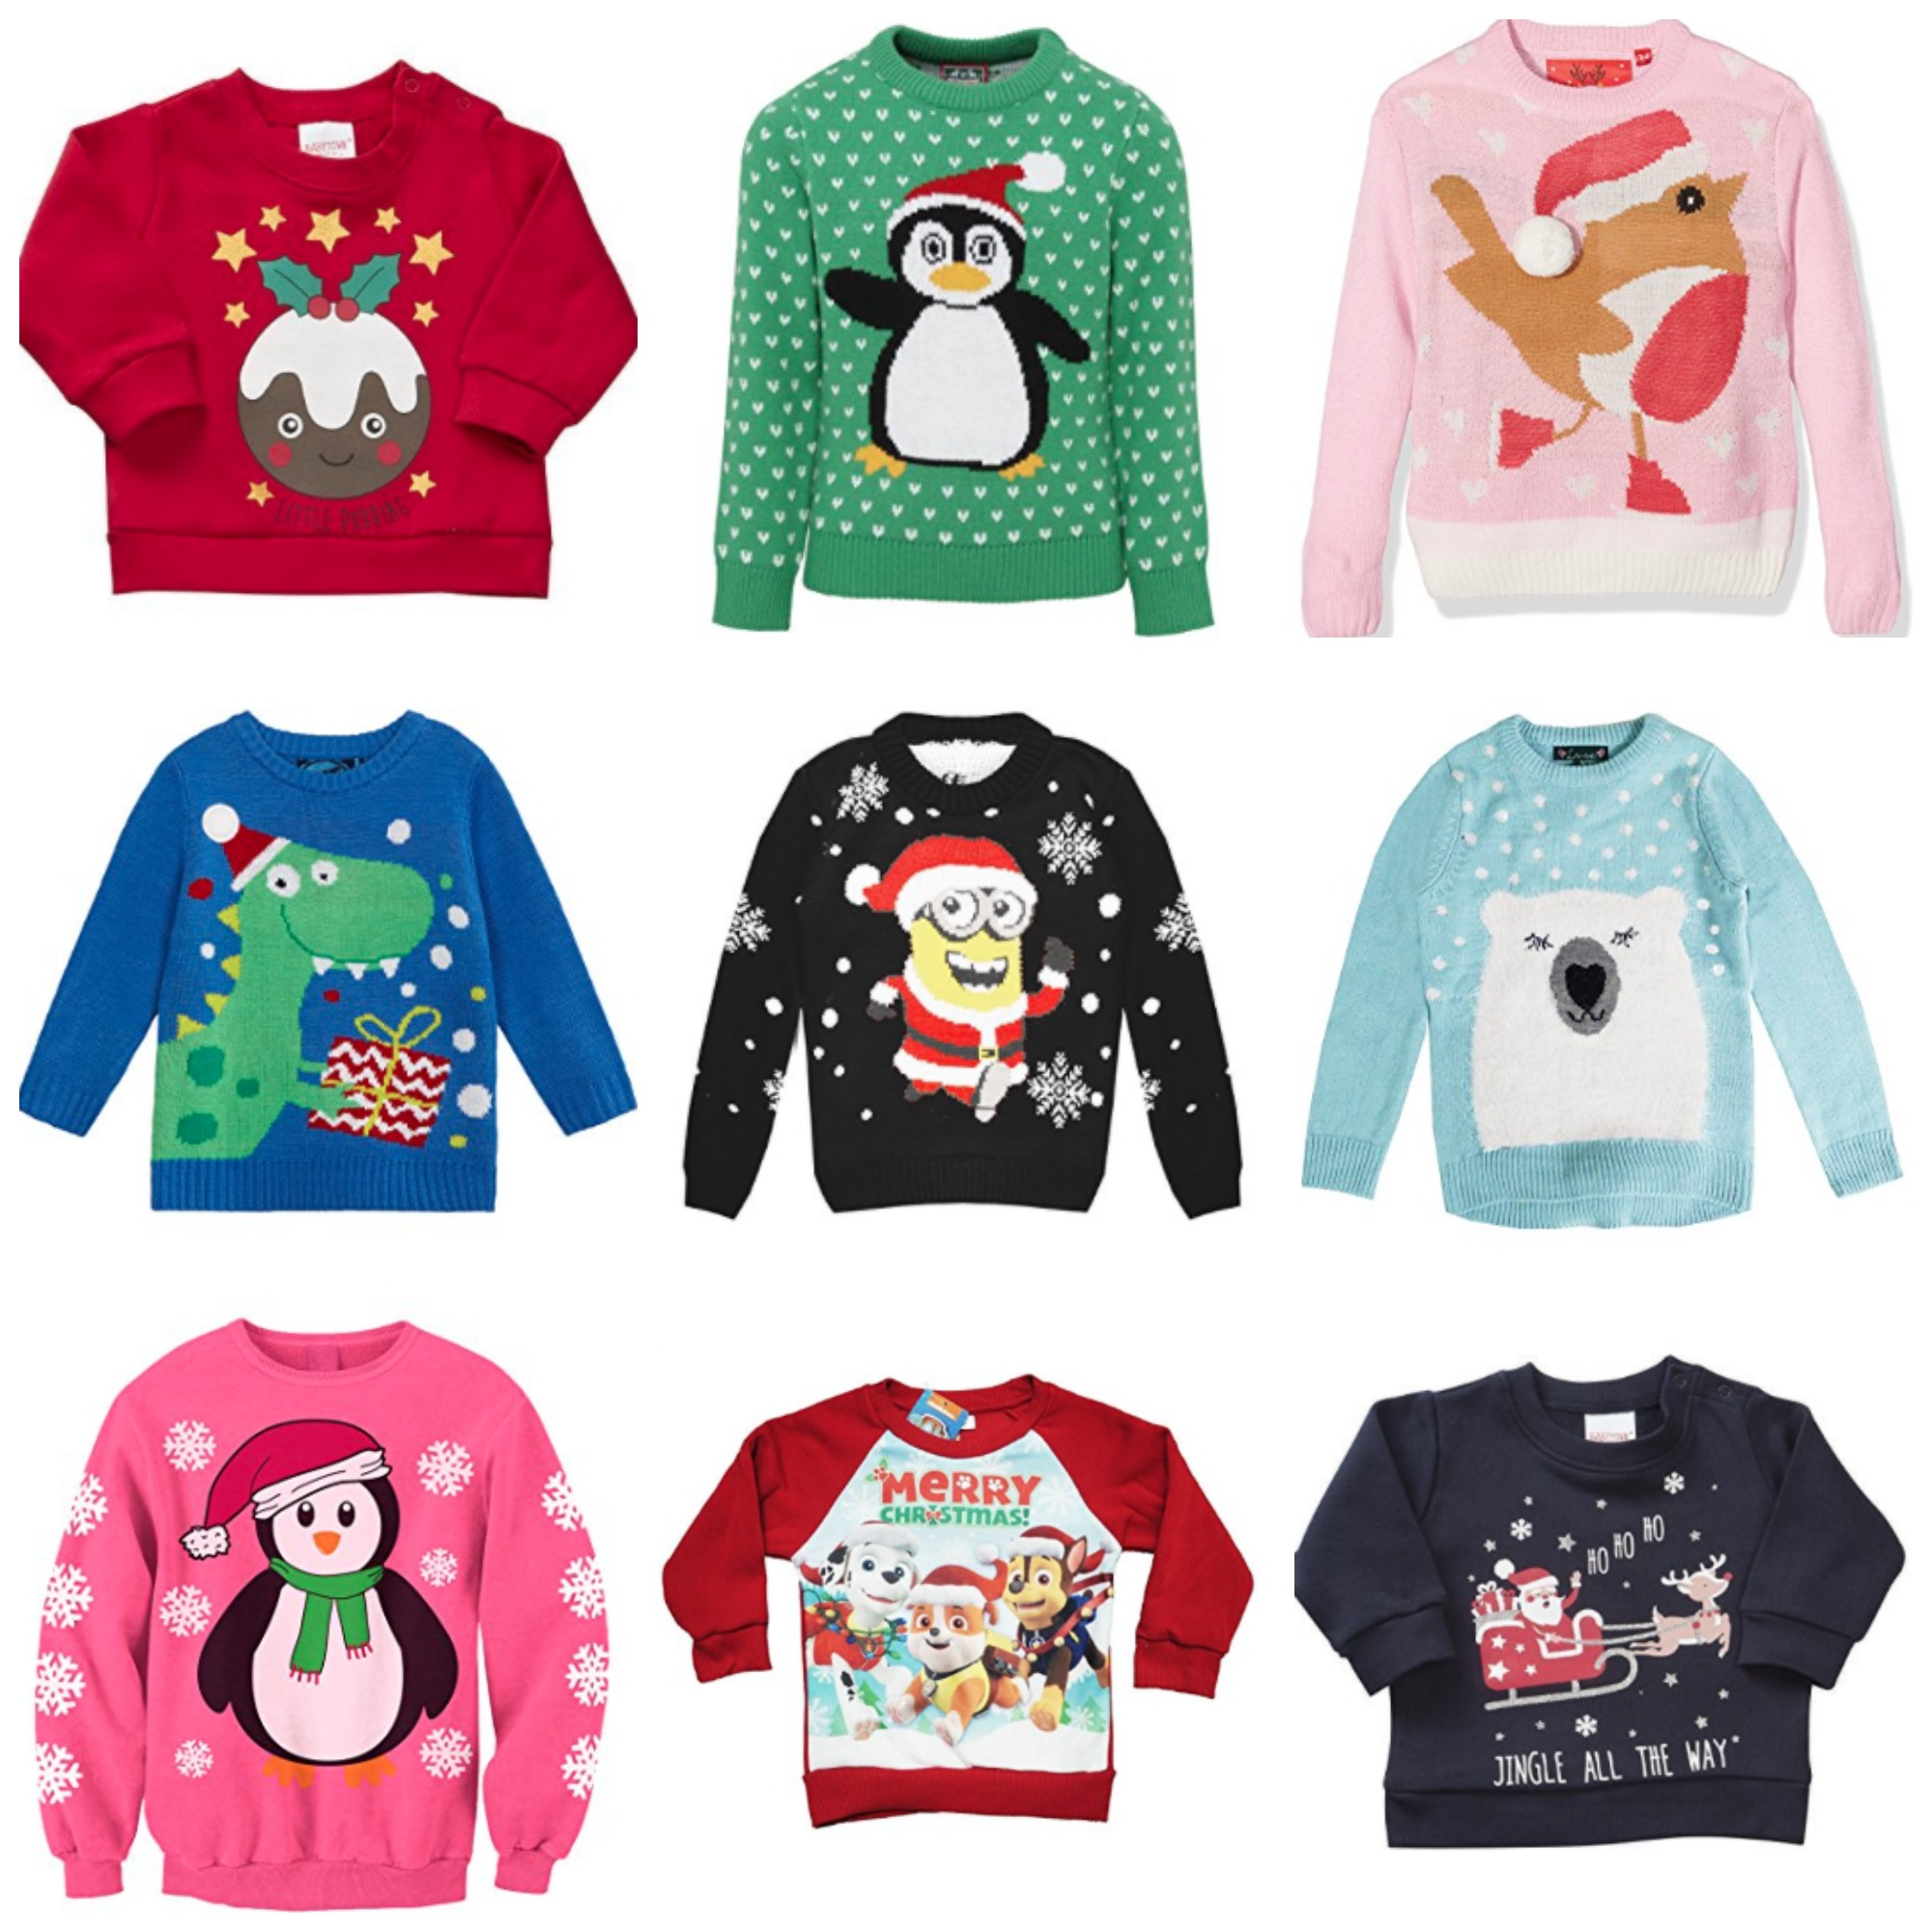 Kids Christmas Jumper Sale